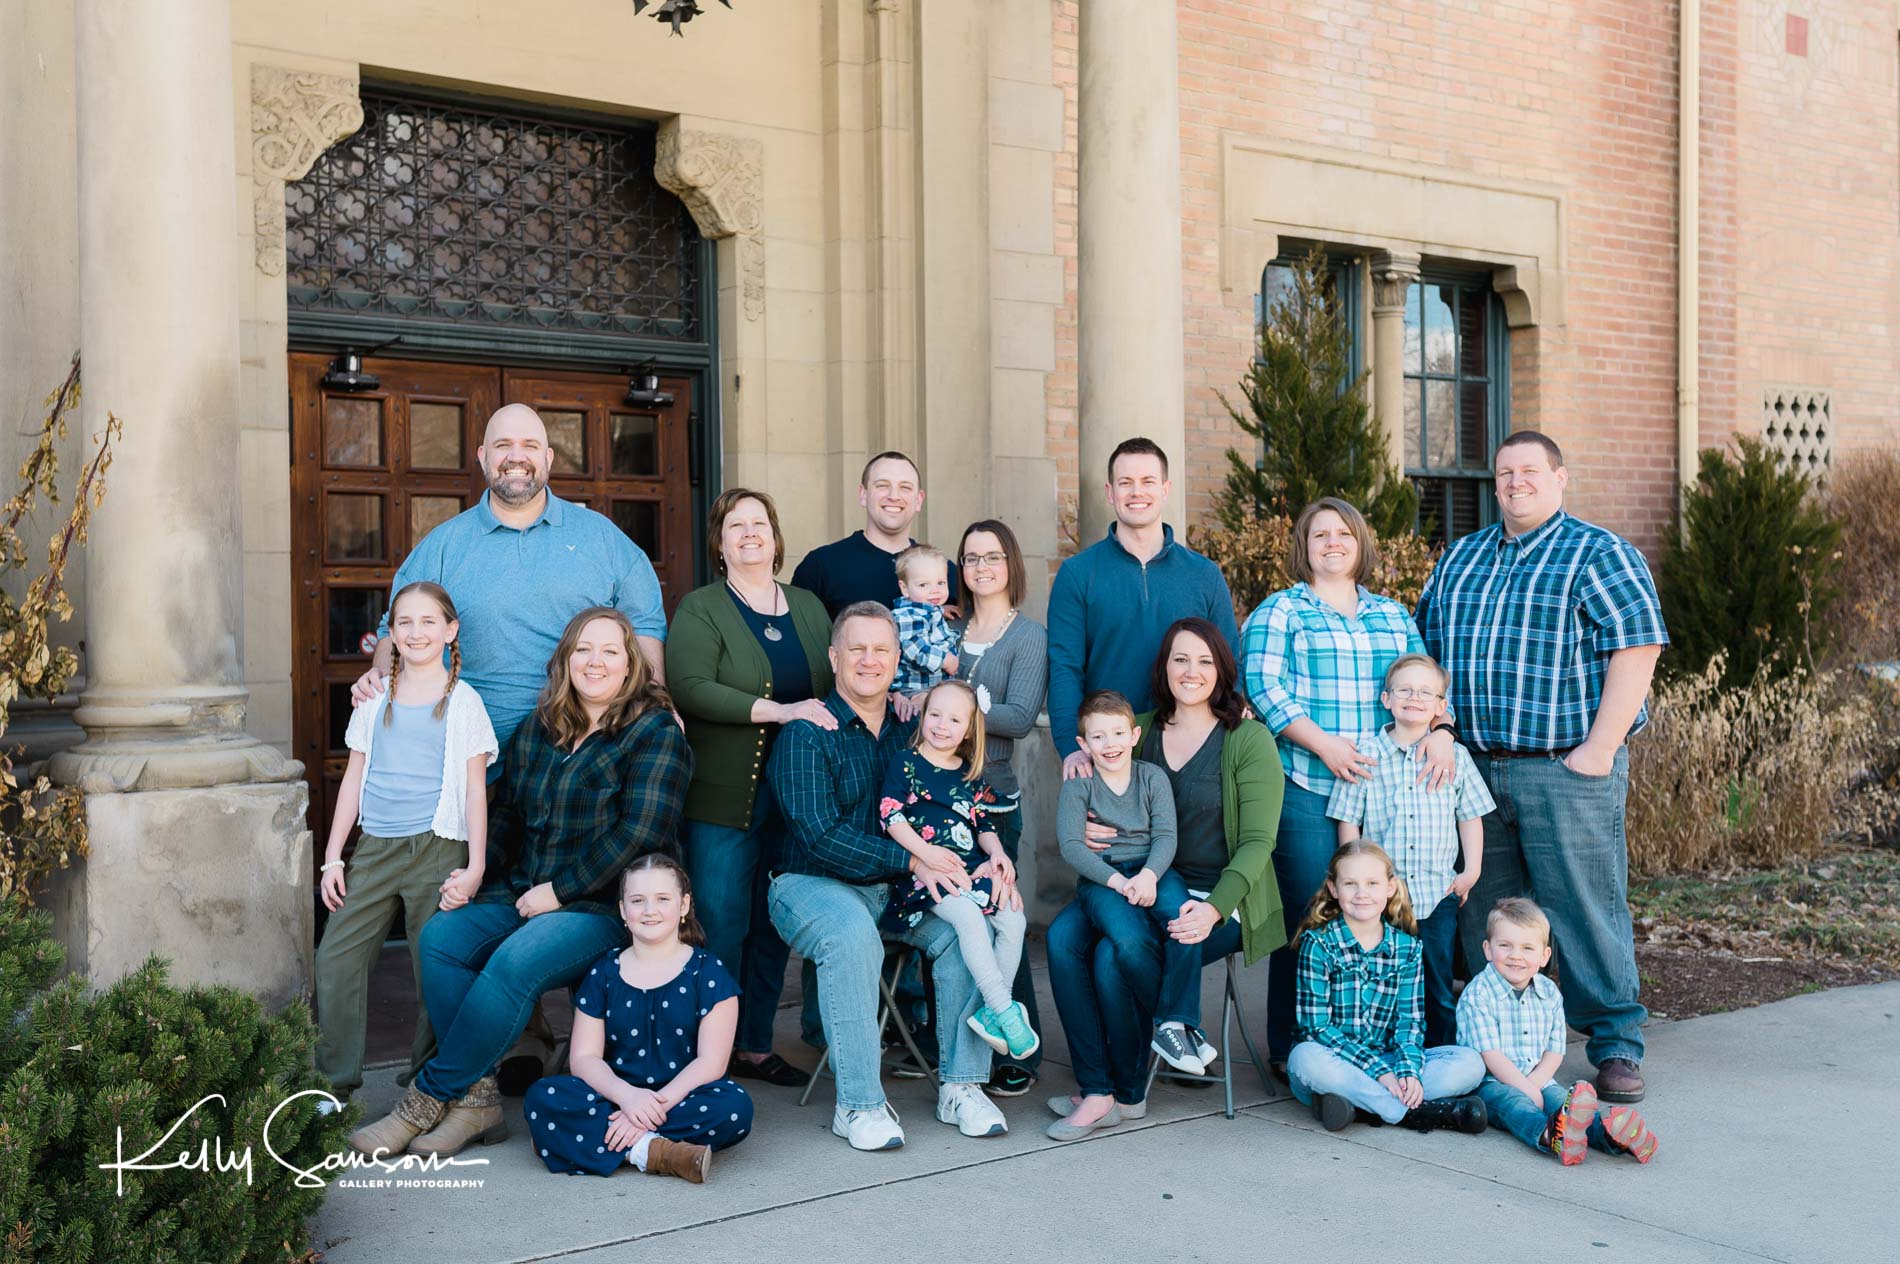 Hall Family Photography at Union Station in Ogden Utah